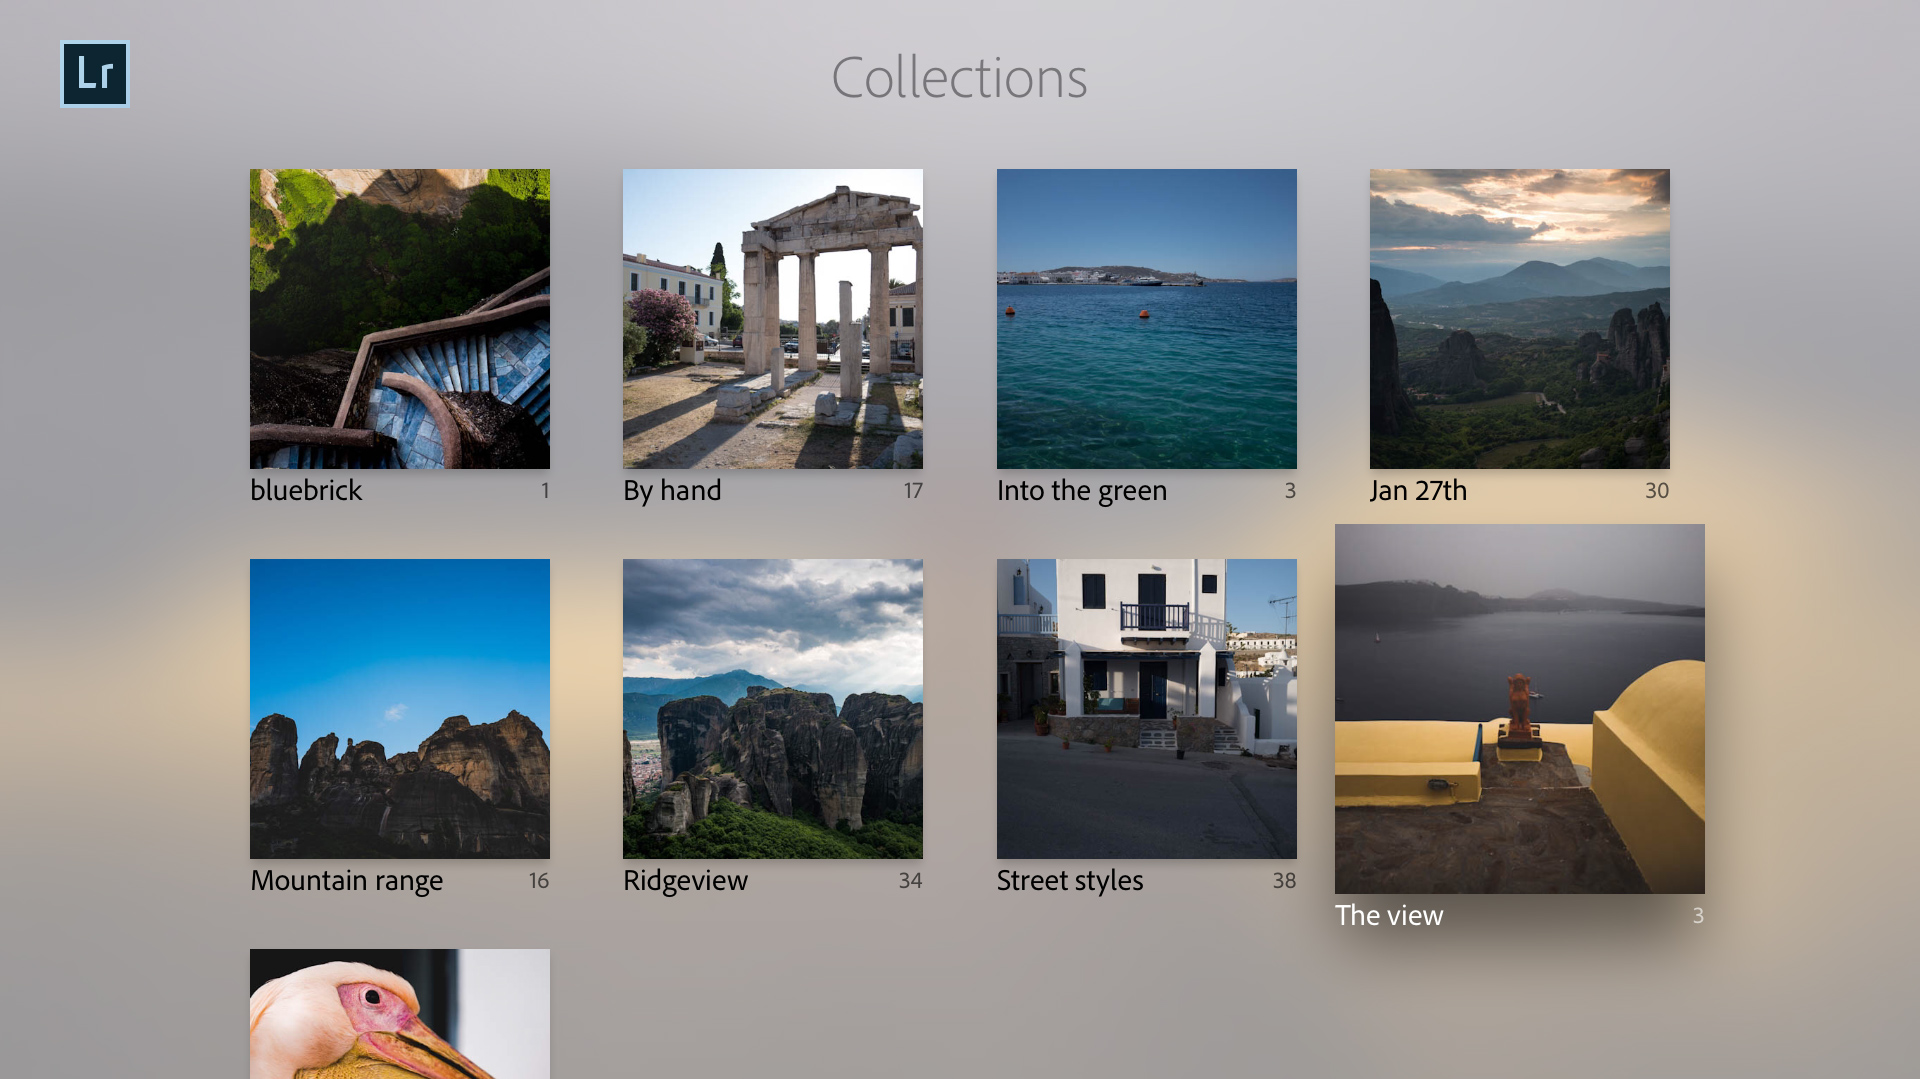 Lightroom Classic CC collections displayed on your TV